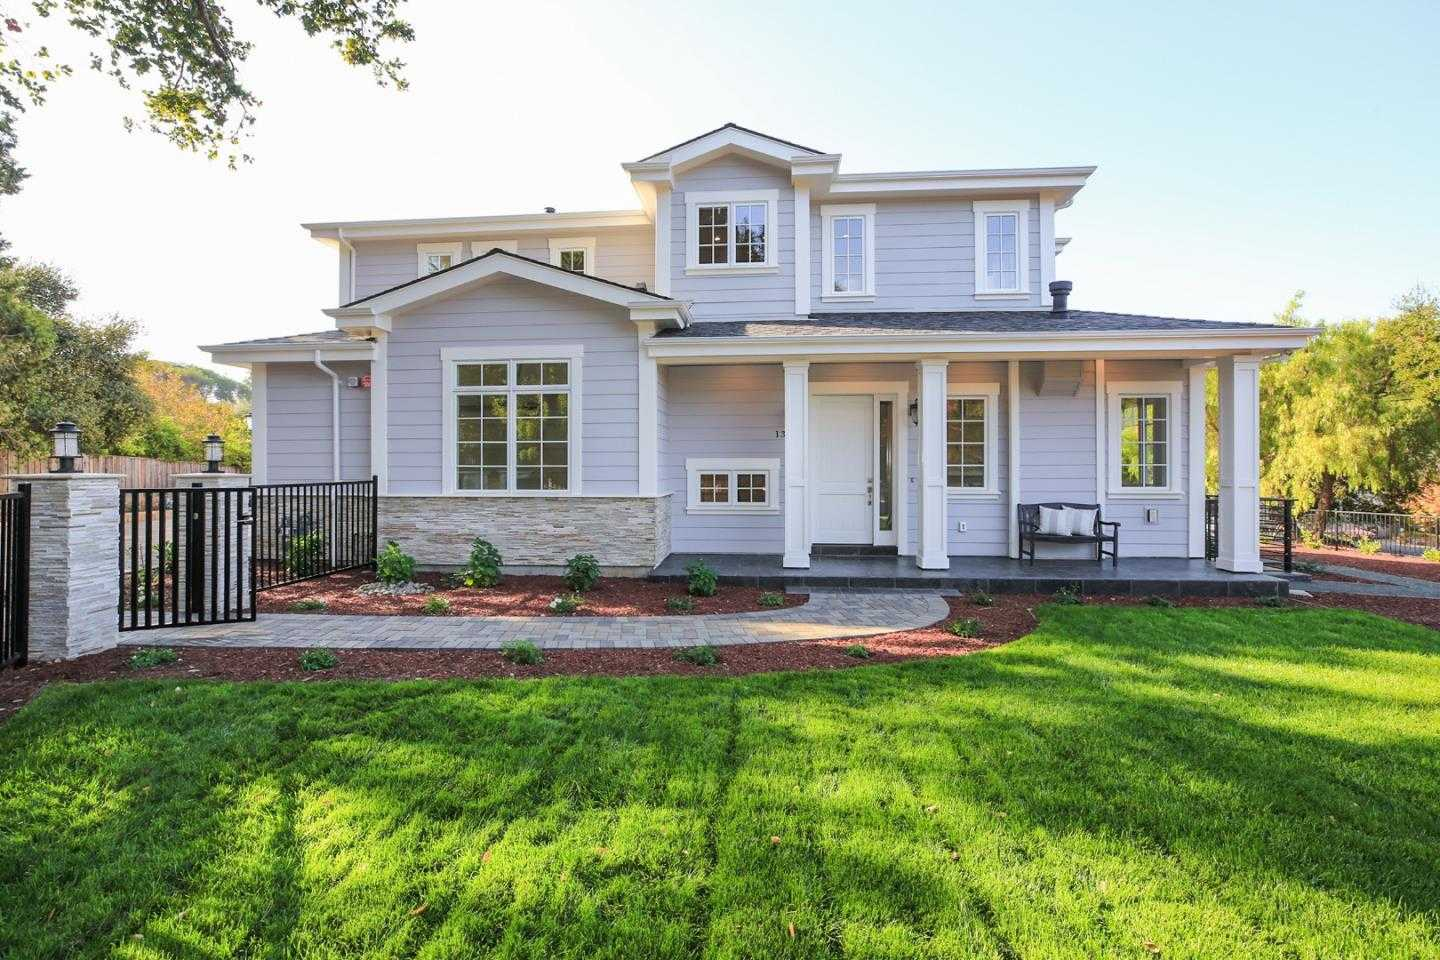 $5,995,750 - 5Br/6Ba -  for Sale in Los Altos Hills